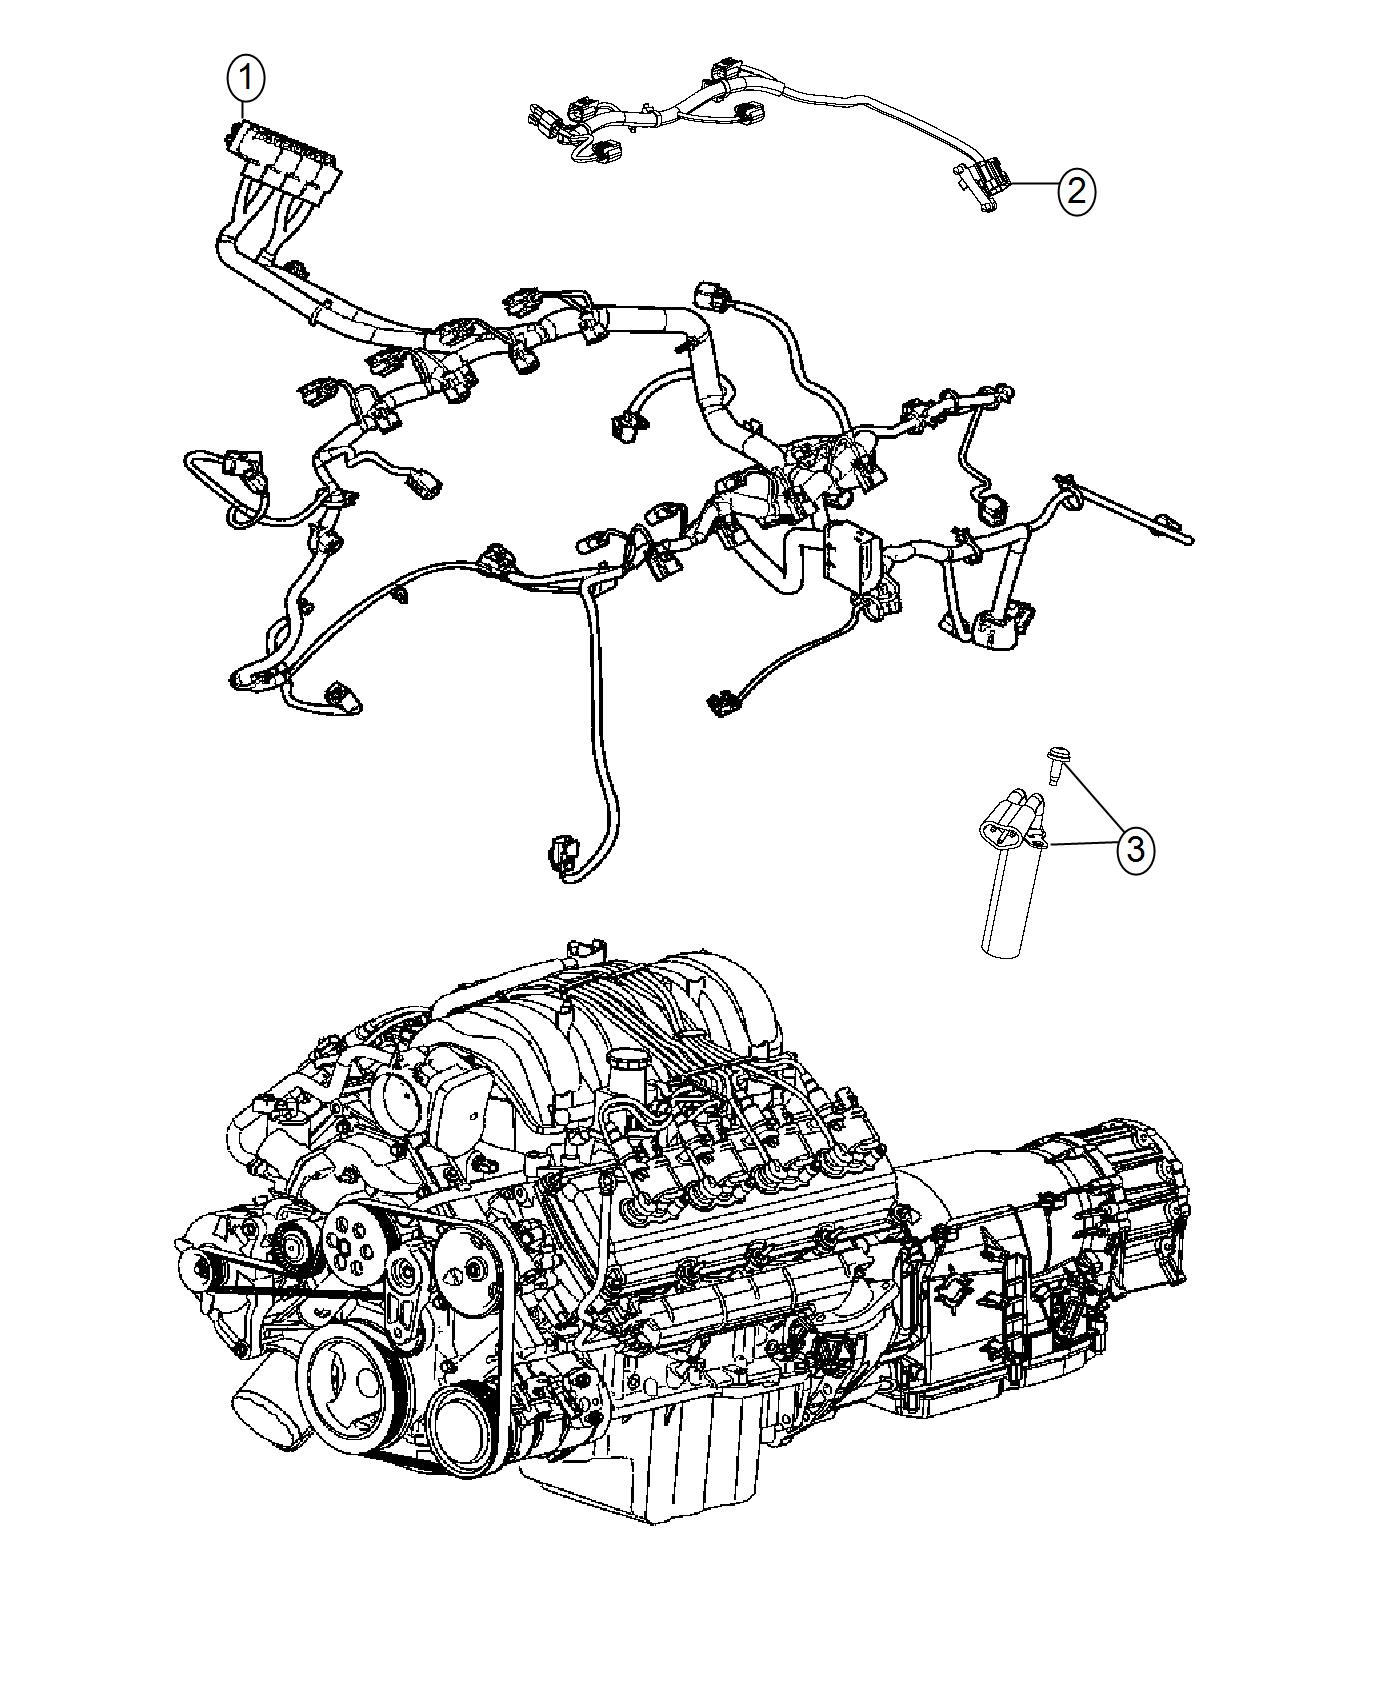 Jeep Grand Cherokee Wiring. Engine. Powertrain, mopar